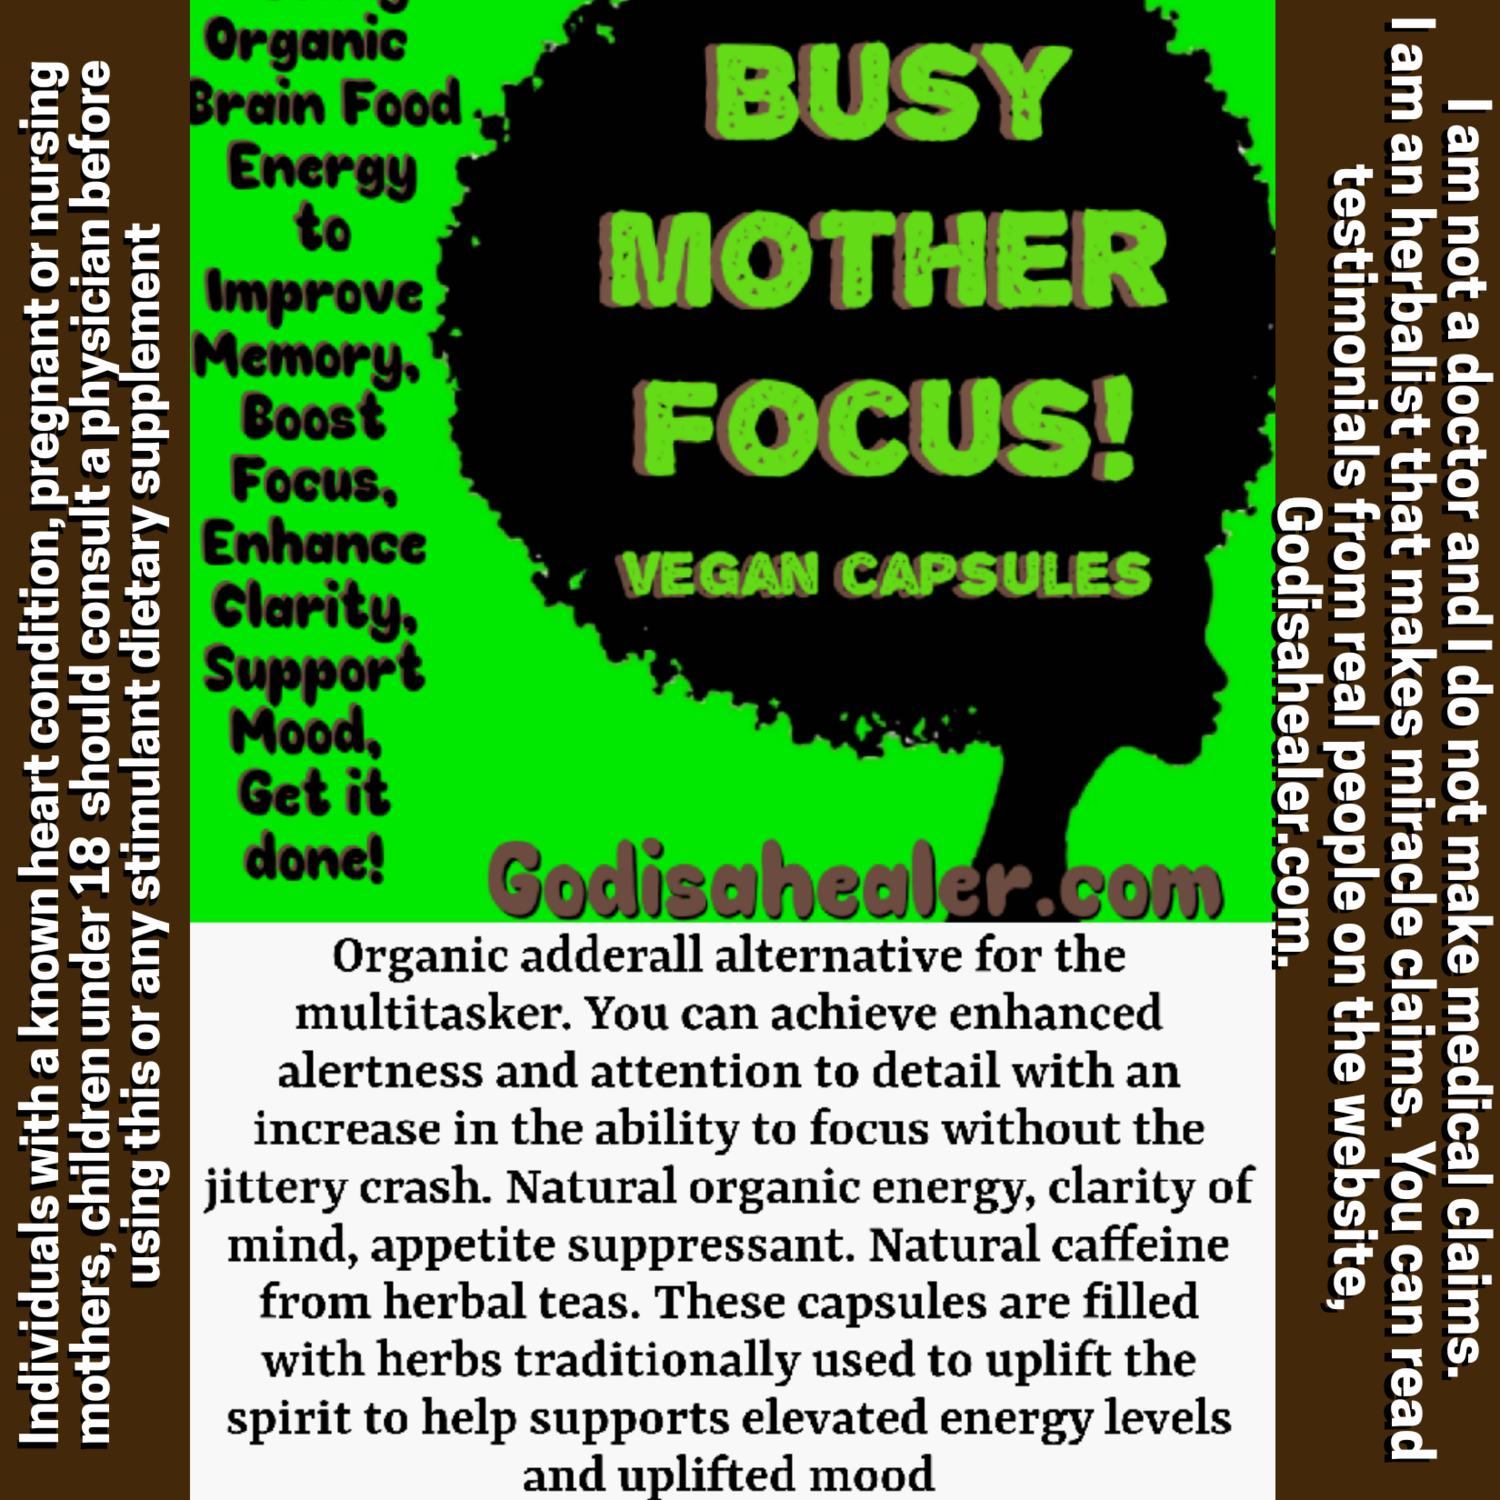 Busy Mother Focus 30 capsules